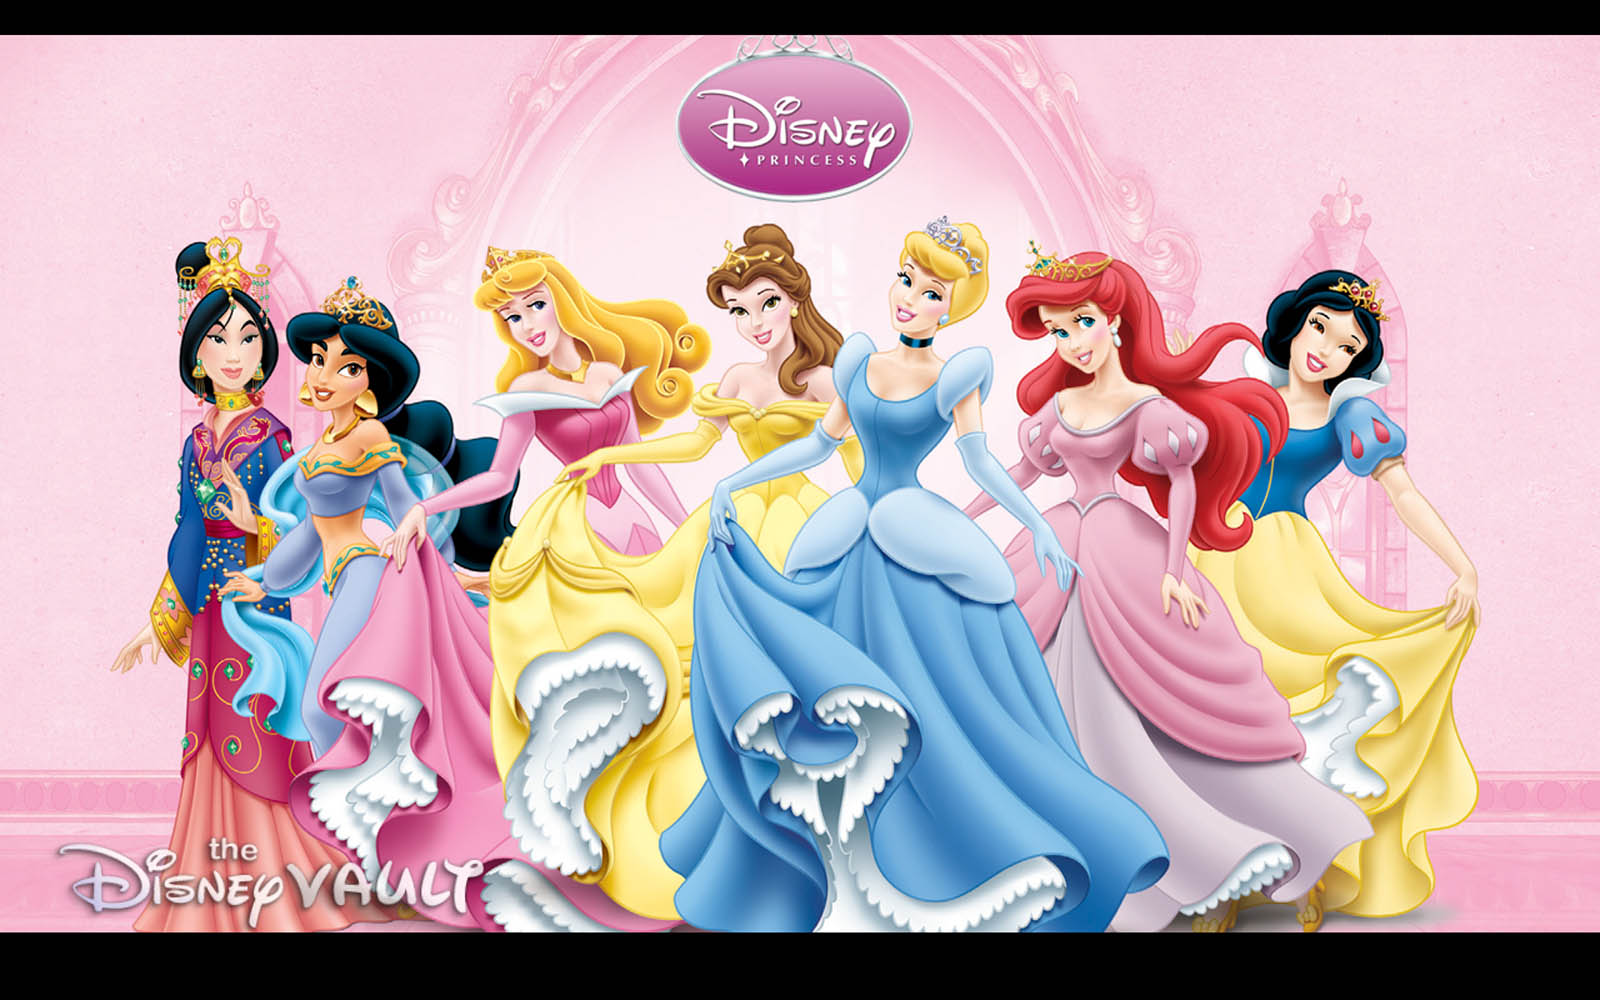 Disney Princess Wallpaperswallpapers screensavers 1600x1000